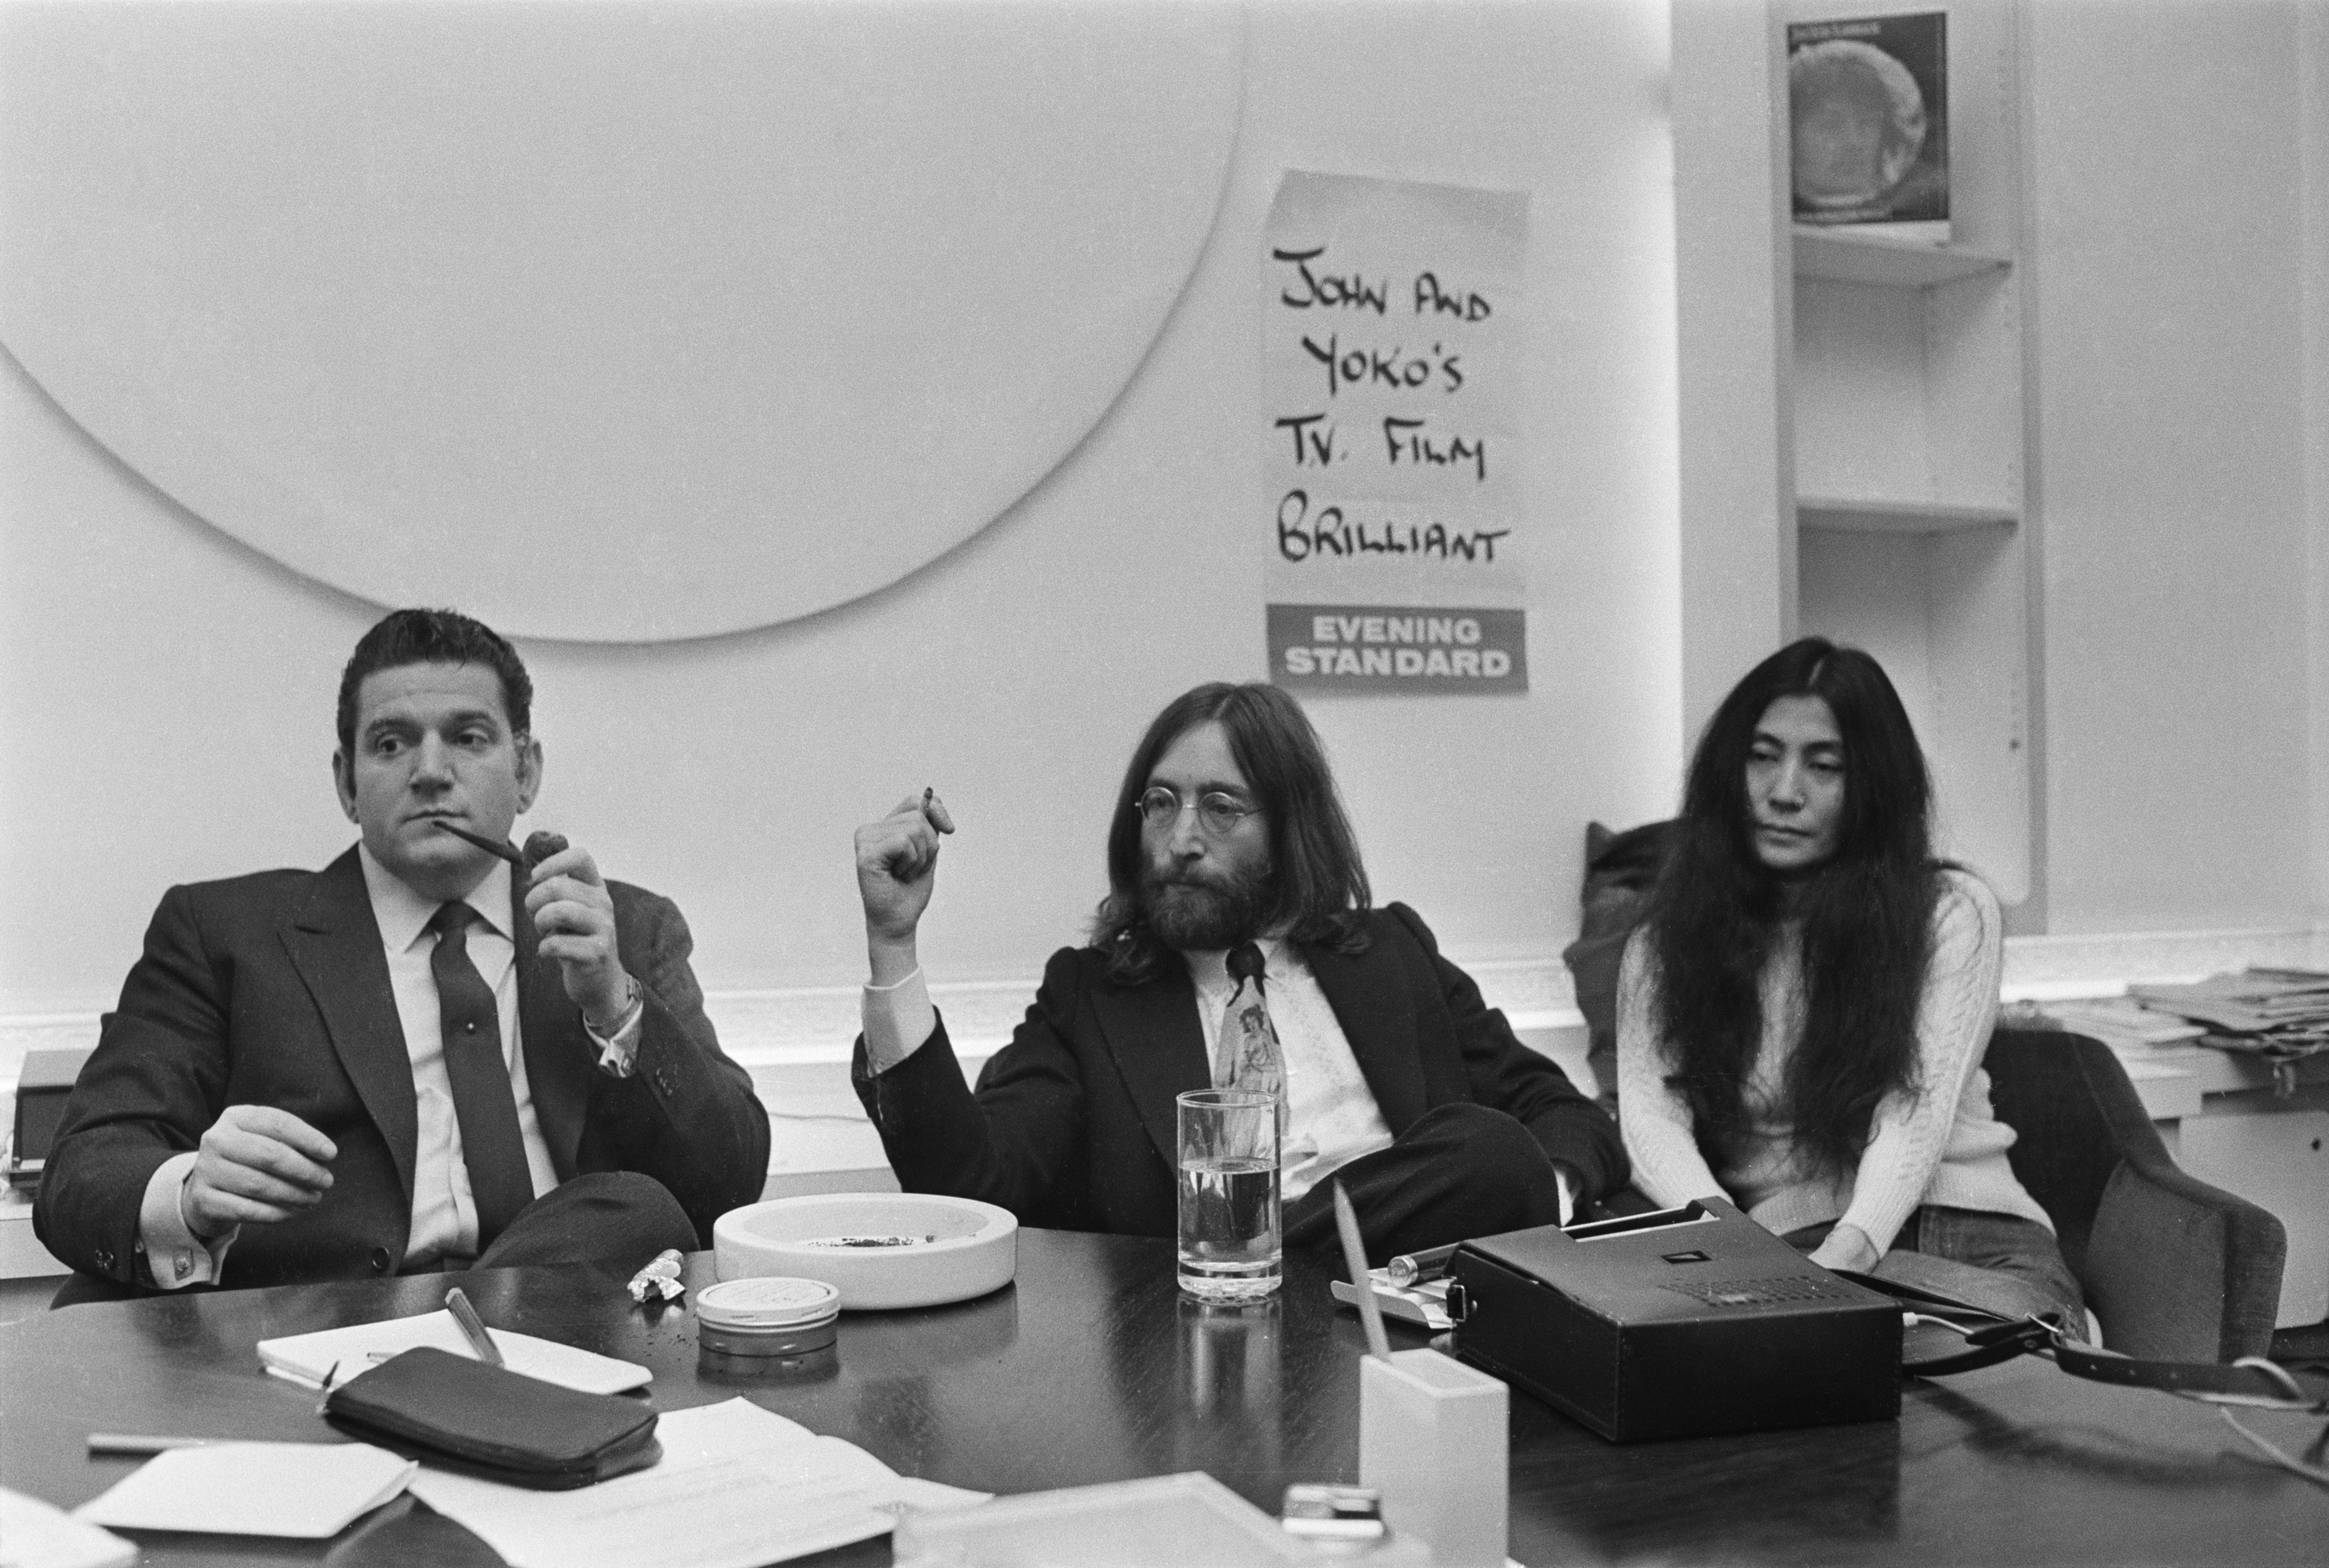 Allen Klein, left,  with John Lennon and Yoko Ono, April 29, 1969. Klein was representing Lennon in negotiations over control of shares in the Beatles' Northern Songs company.